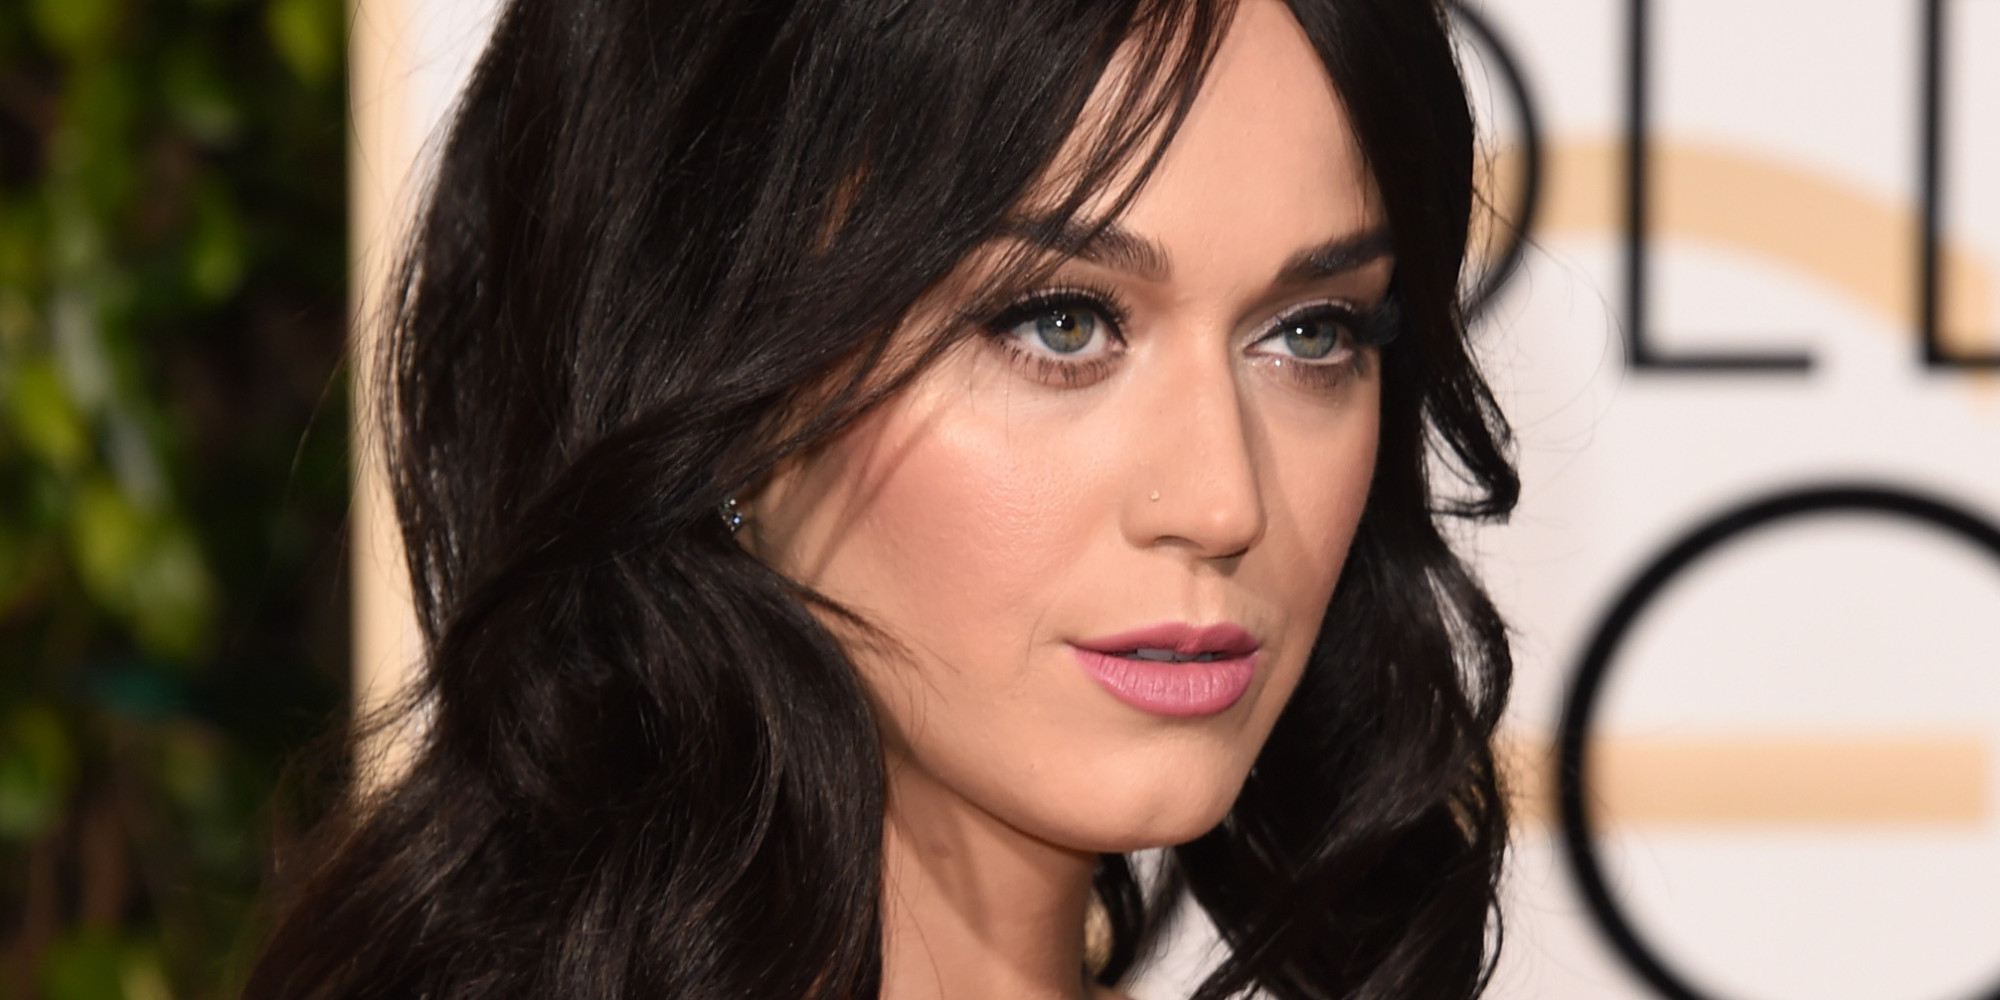 katy perry chained to the rhythm mp3katy perry chained to the rhythm, katy perry rise, katy perry chained to the rhythm скачать, katy perry roar, katy perry firework, katy perry dark horse, katy perry chained to the rhythm перевод, katy perry rise скачать, katy perry roar скачать, katy perry dark horse скачать, katy perry 2017, katy perry firework скачать, katy perry песни, katy perry kiss me, katy perry hot n cold, katy perry chained to the rhythm mp3, katy perry e.t, katy perry unconditionally, katy perry feat. skip marley, katy perry last friday night